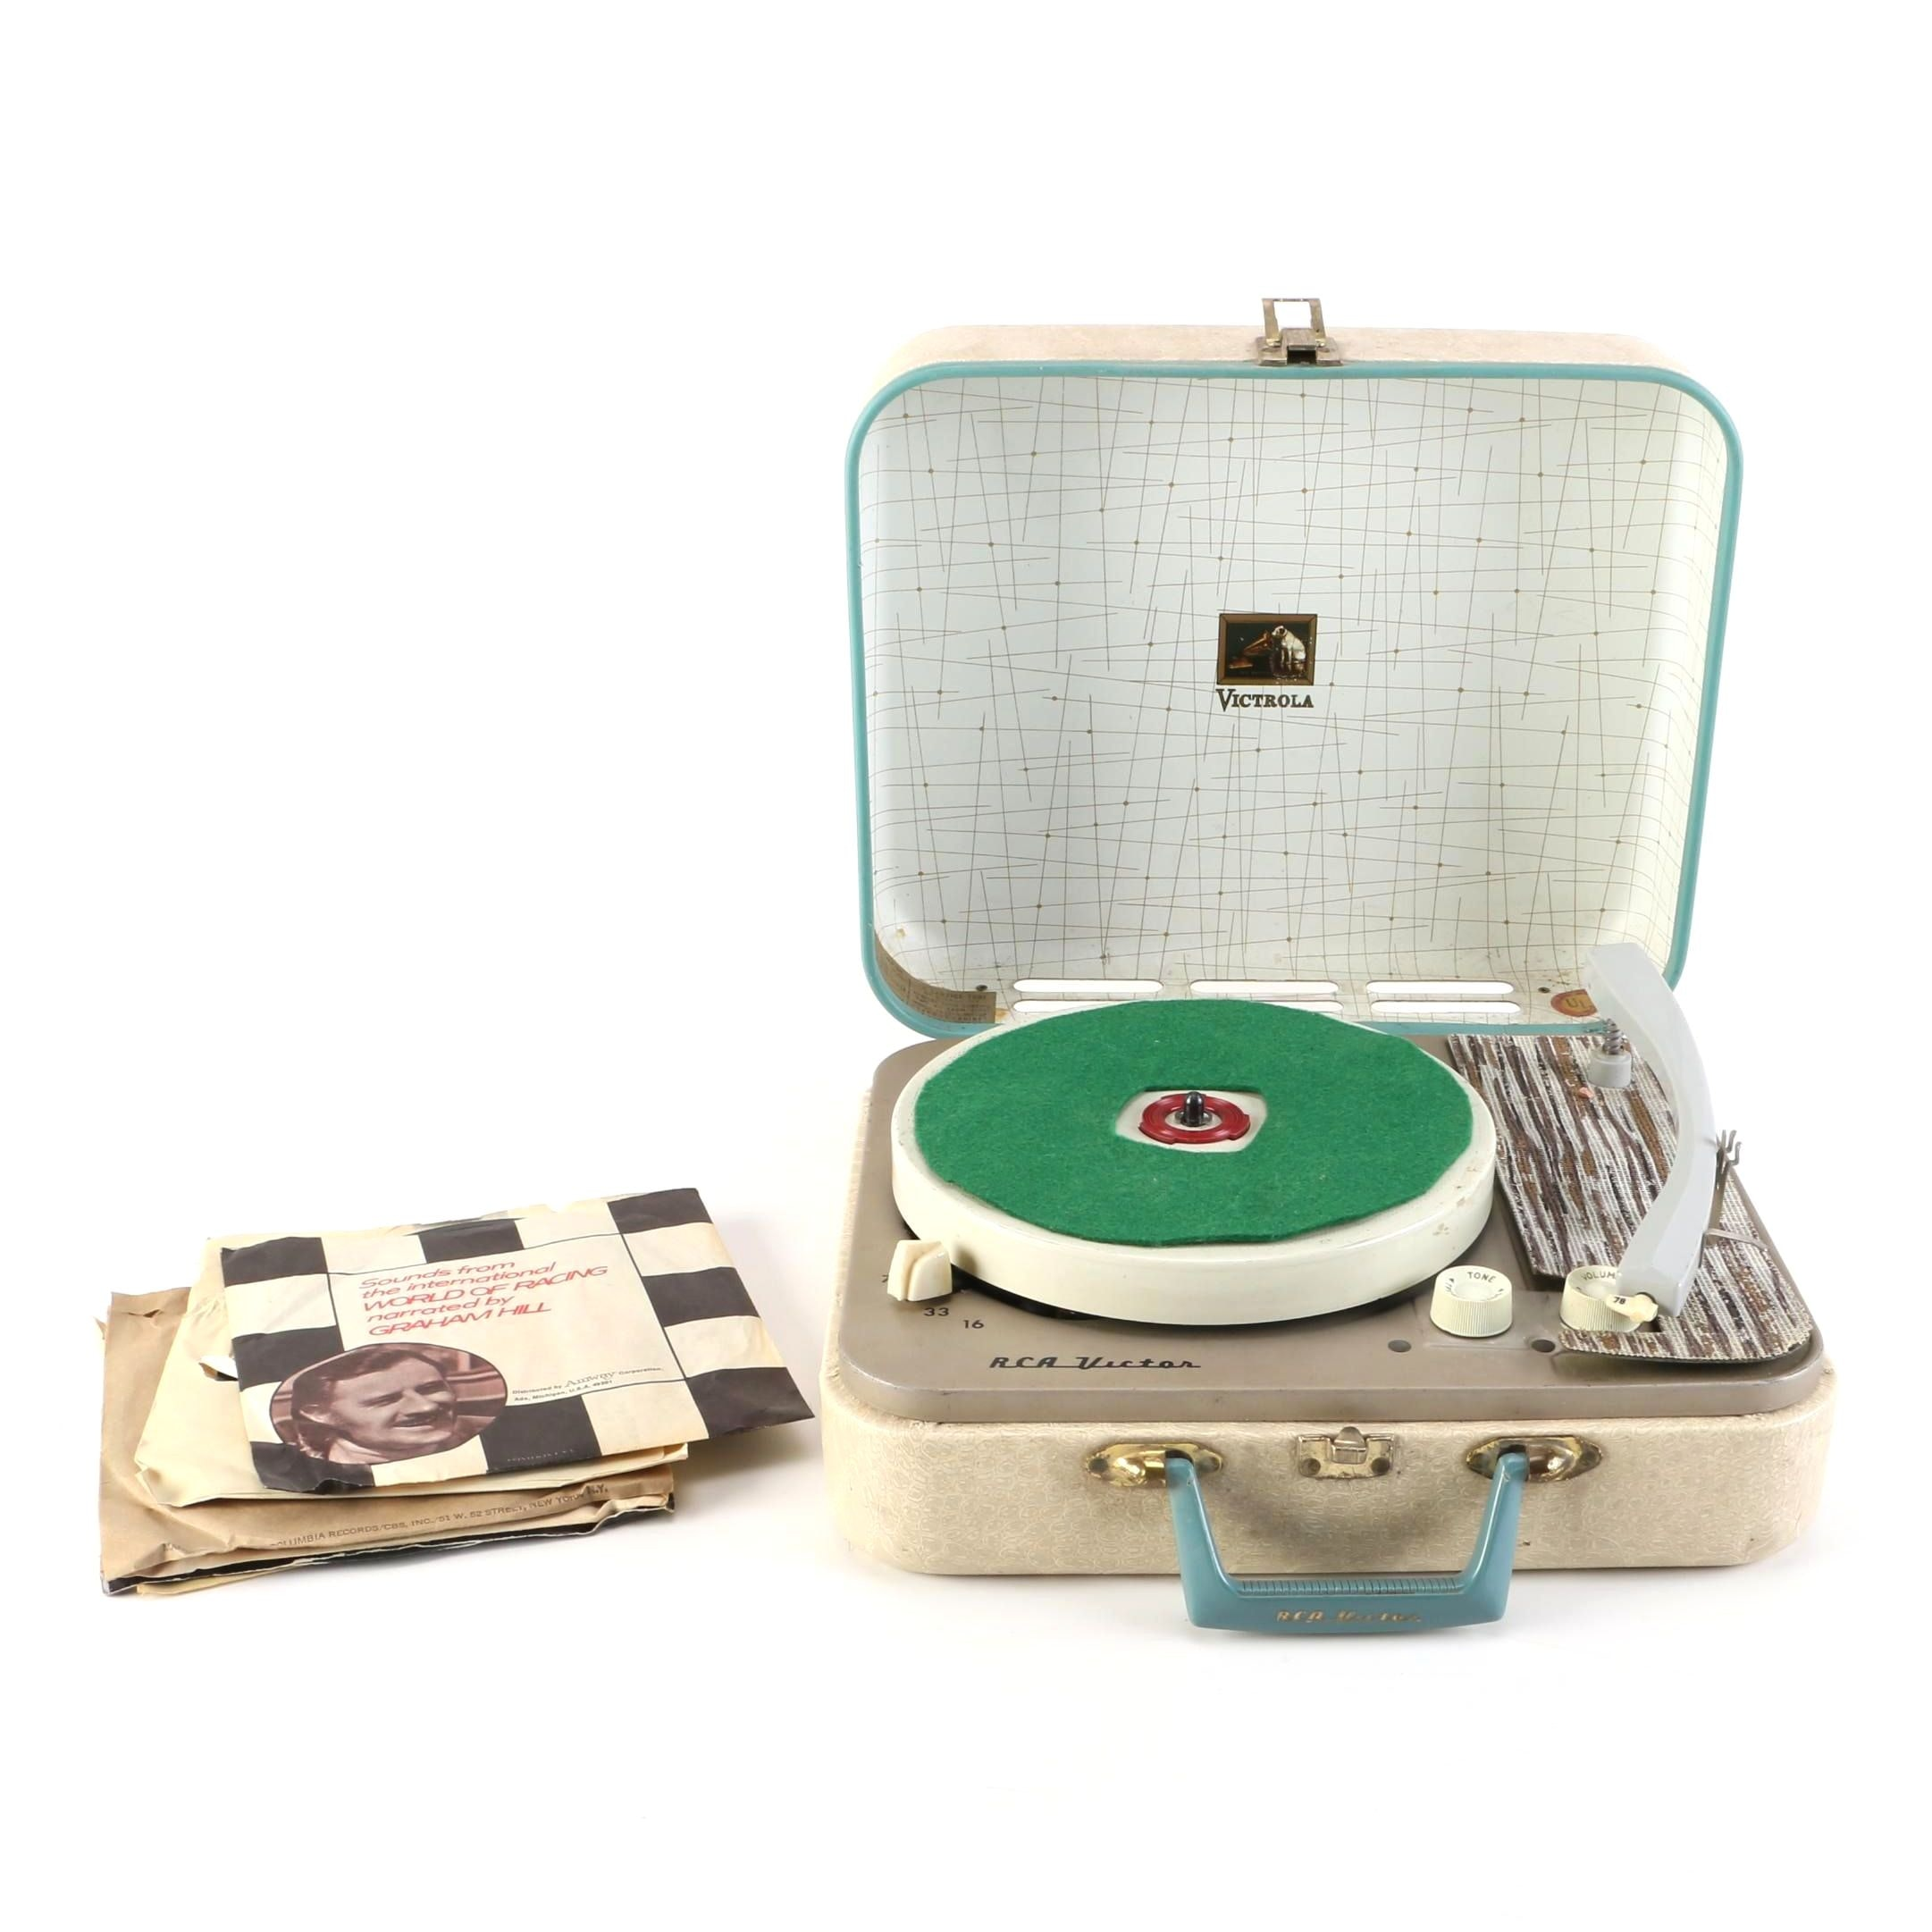 RCA Victor Portable Record Player and 45 rpm Singles